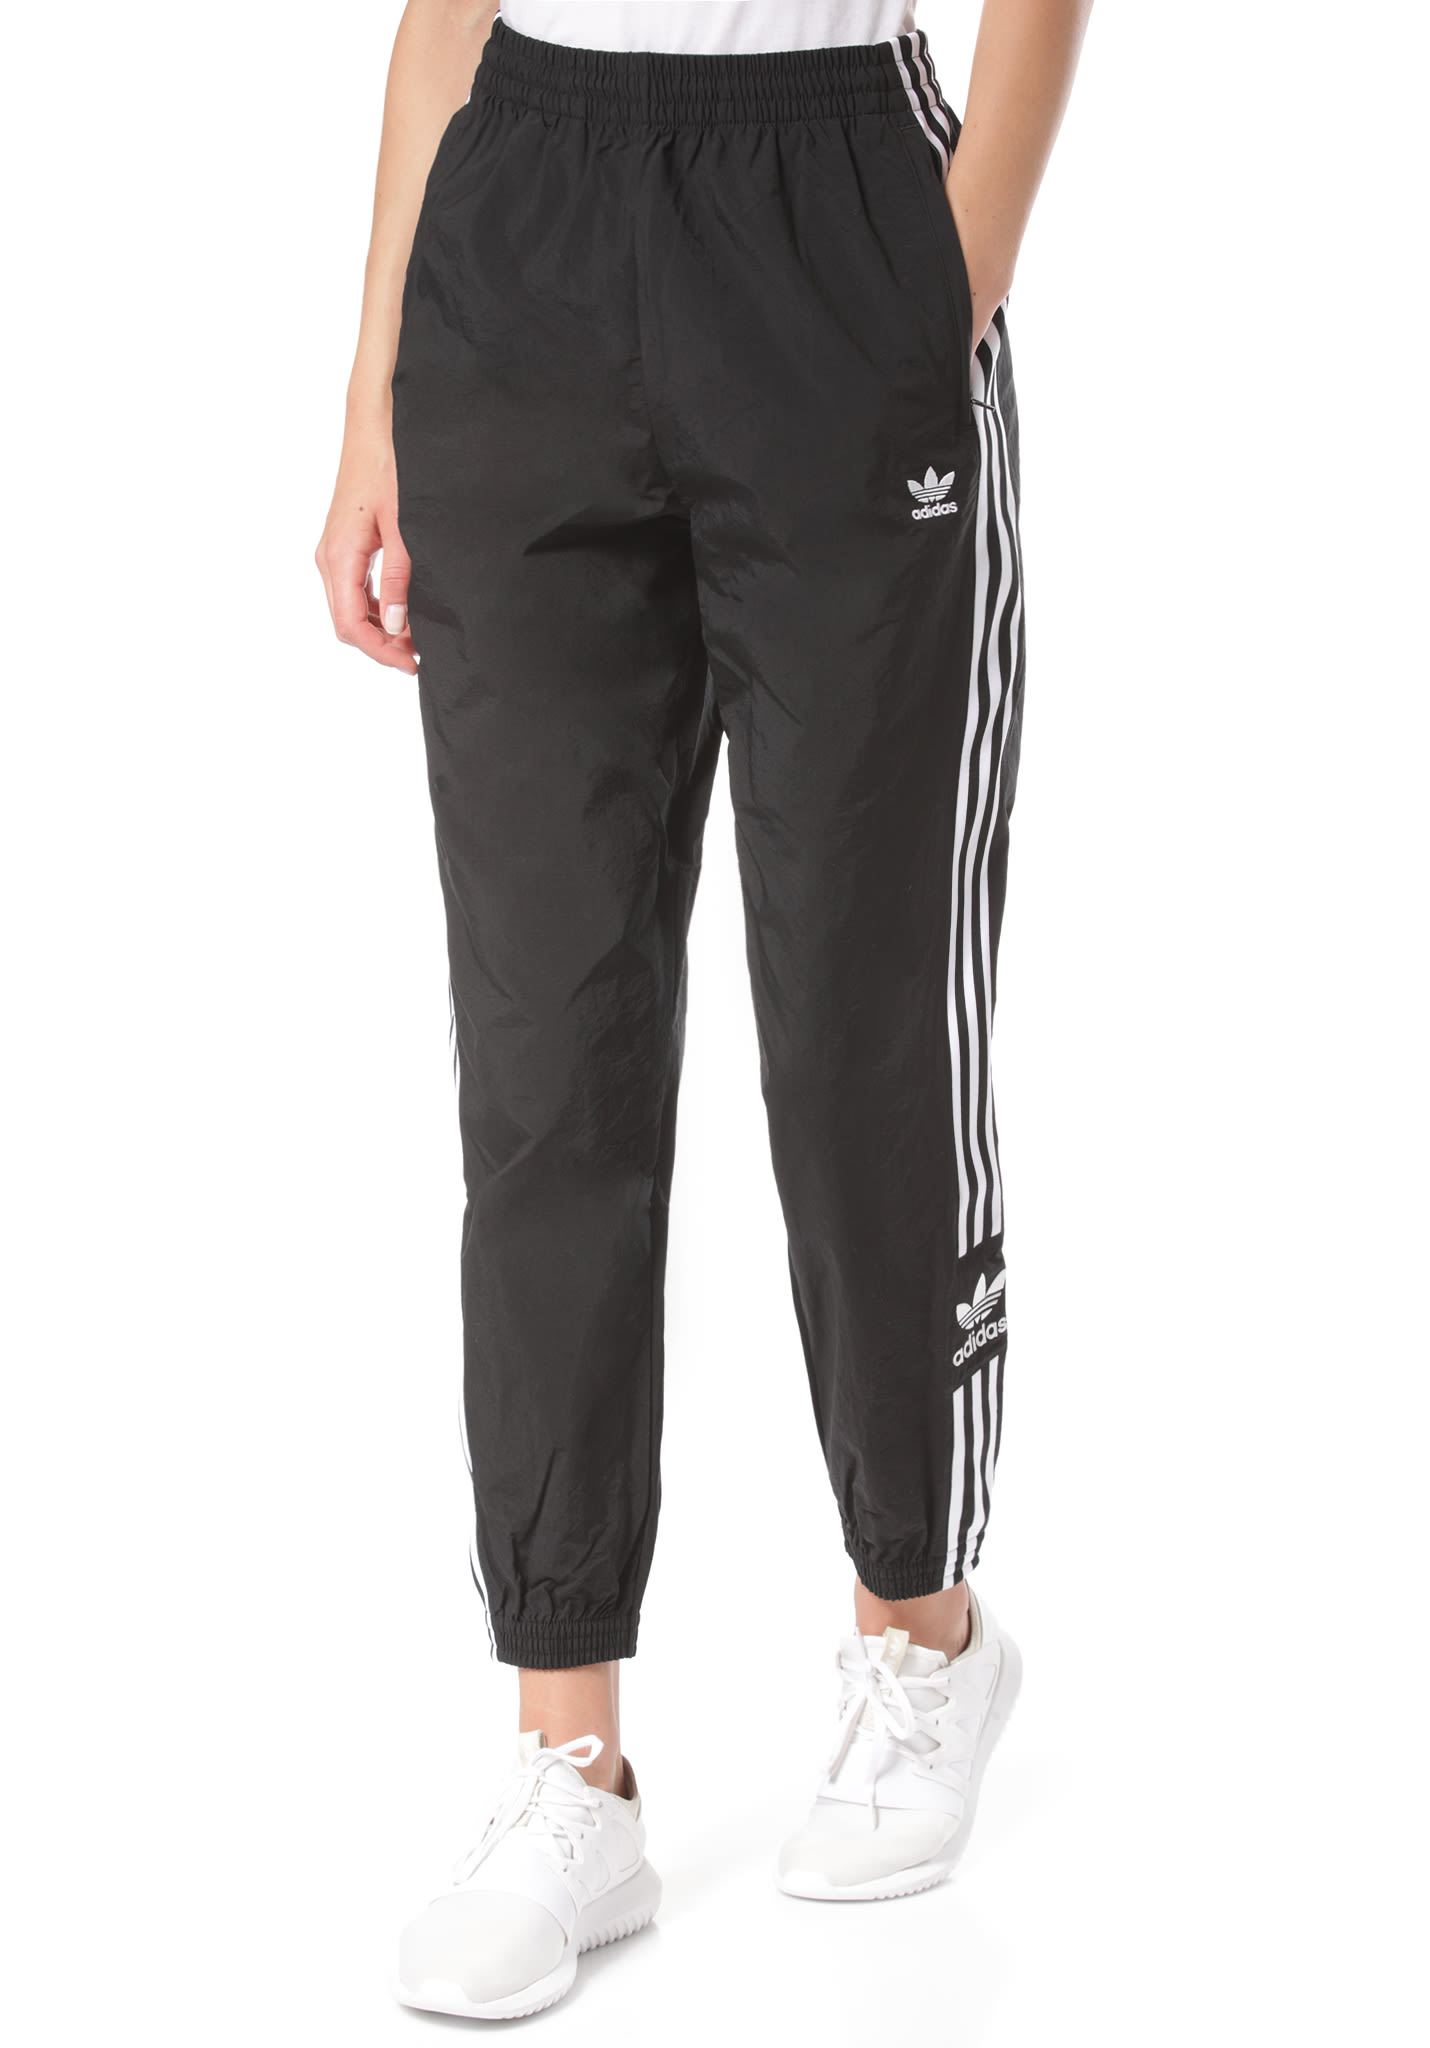 ADIDAS ORIGINALS Lock Up Trainingsbroek voor Dames Zwart